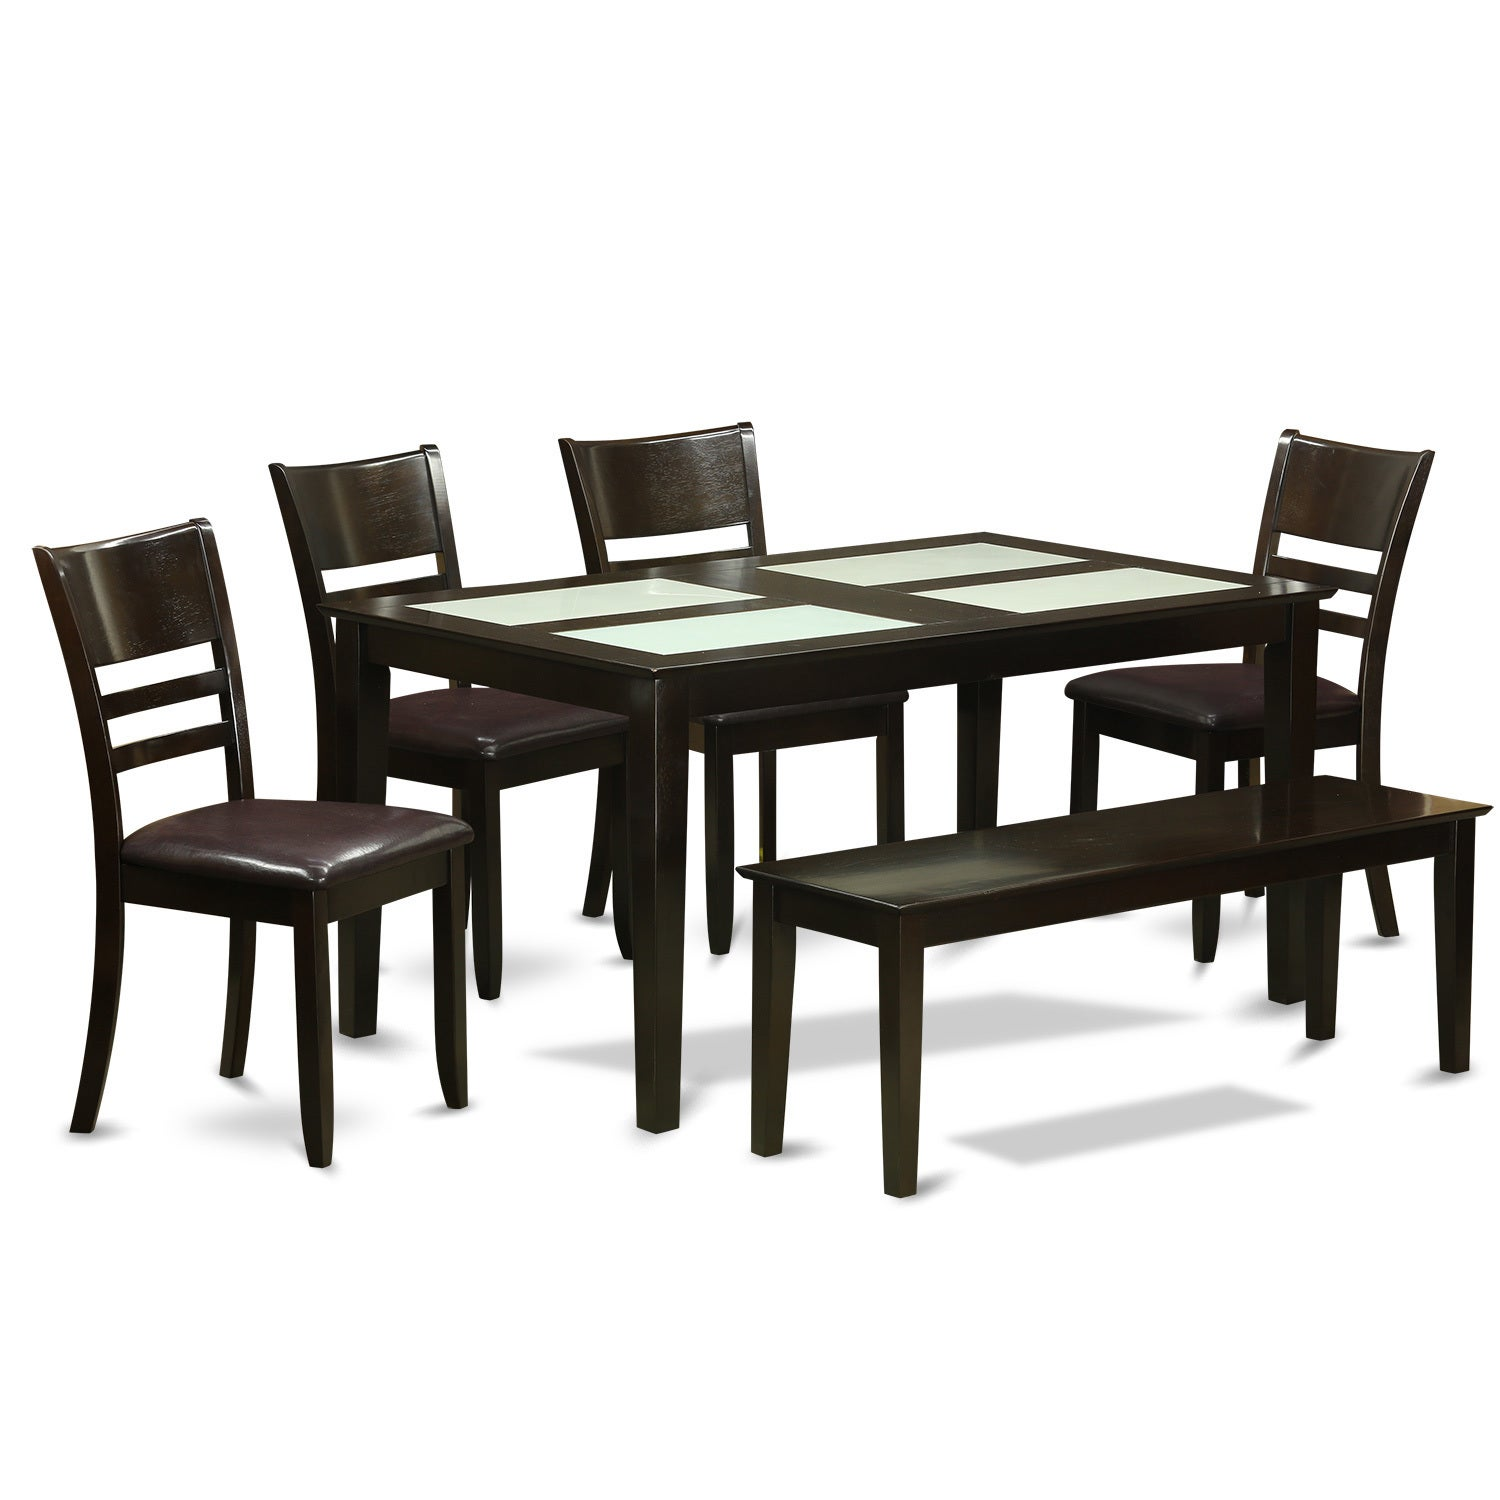 Shop Cappuccino Rubberwood 6 Piece Dining Room Set With Glass Top Dining Table And 5 Chairs Overstock 12025840